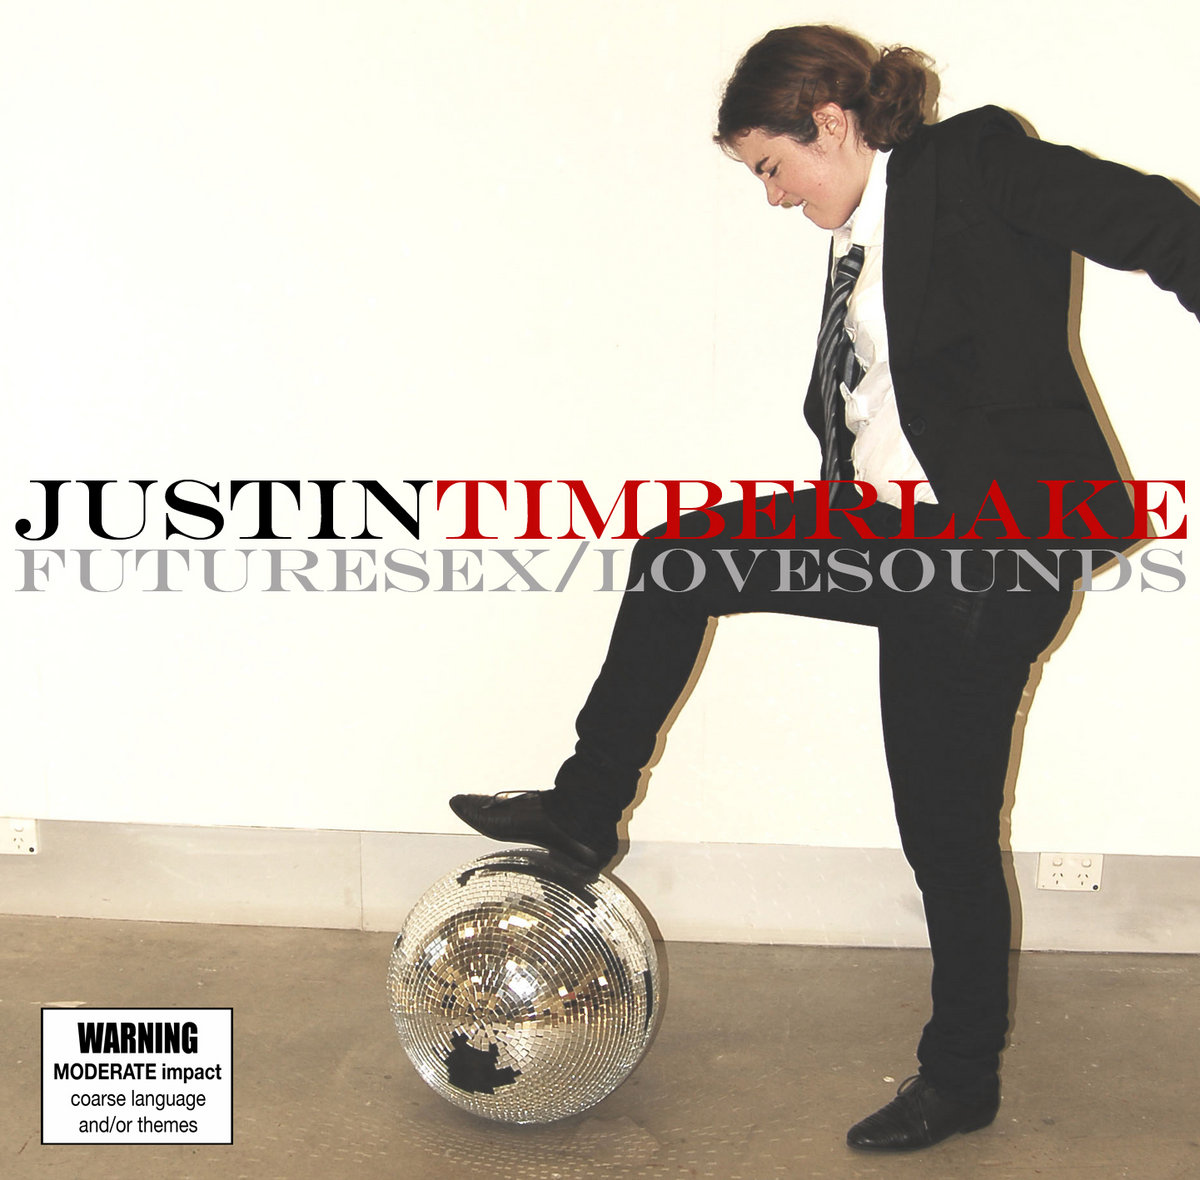 Futuresex Lovesounds Album Cover.